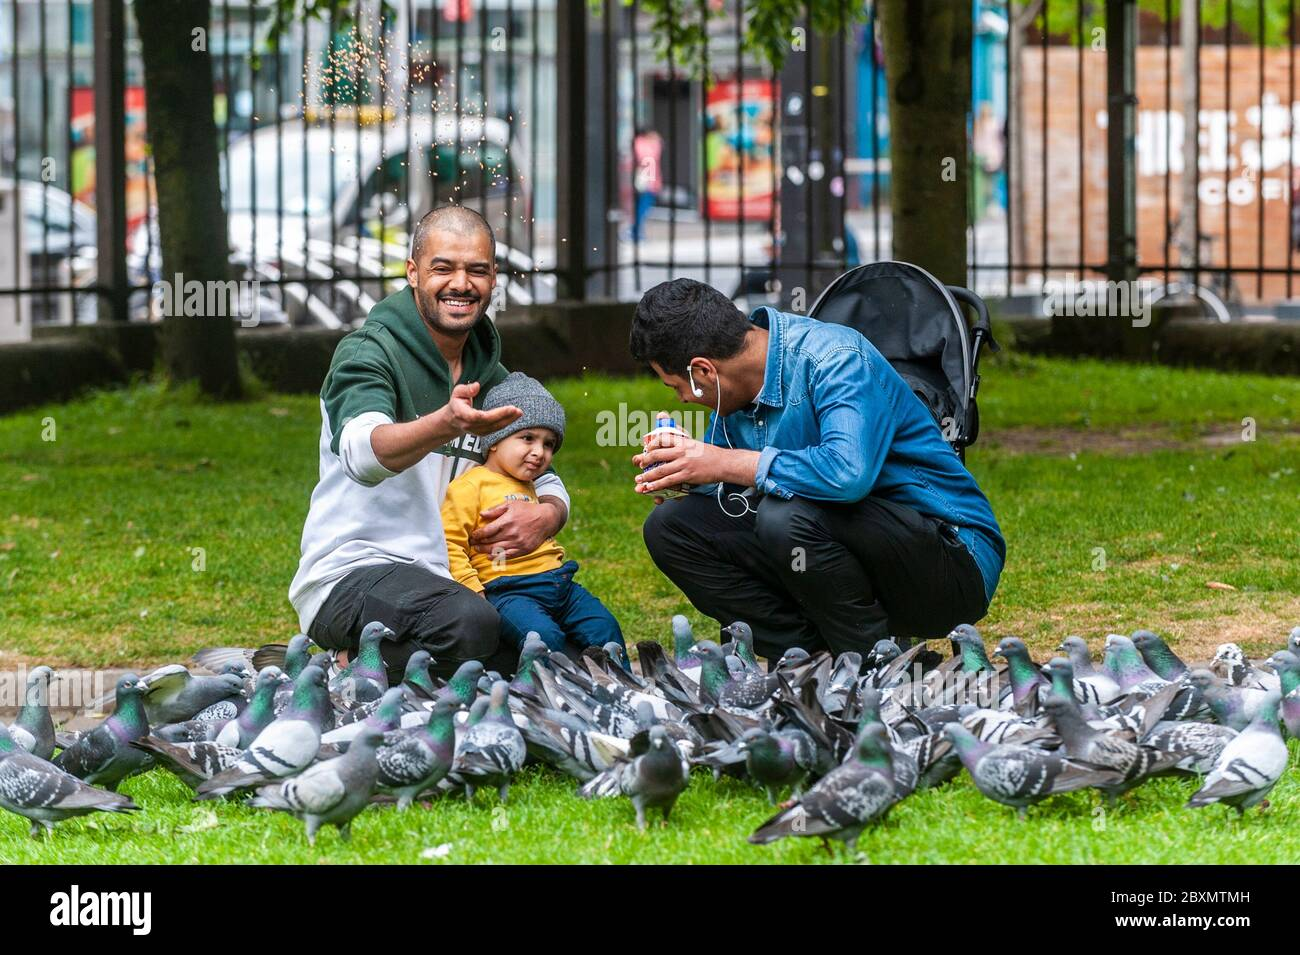 cork-ireland-8th-june-2020-many-shops-in-ireland-are-re-opening-today-after-a-3-month-closure-due-to-the-covid-19-pandemic-a-family-feeds-the-pigeons-in-bishop-lucey-park-grand-parade-cork-credit-ag-newsalamy-live-news-2BXMTMH.jpg